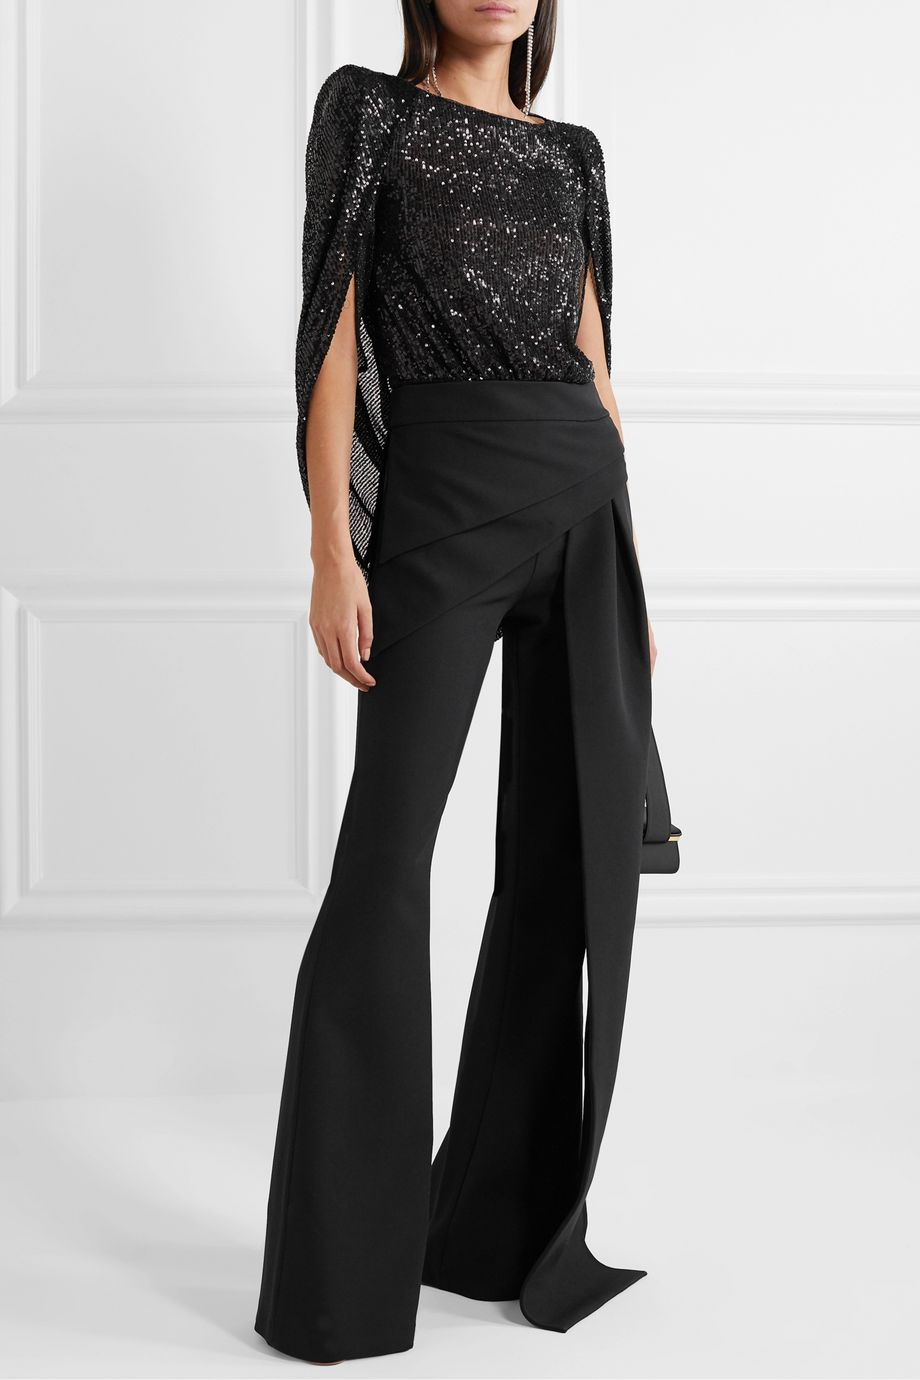 Talbot Runhof Tasashi cape-effect sequined metallic tulle bodysuit